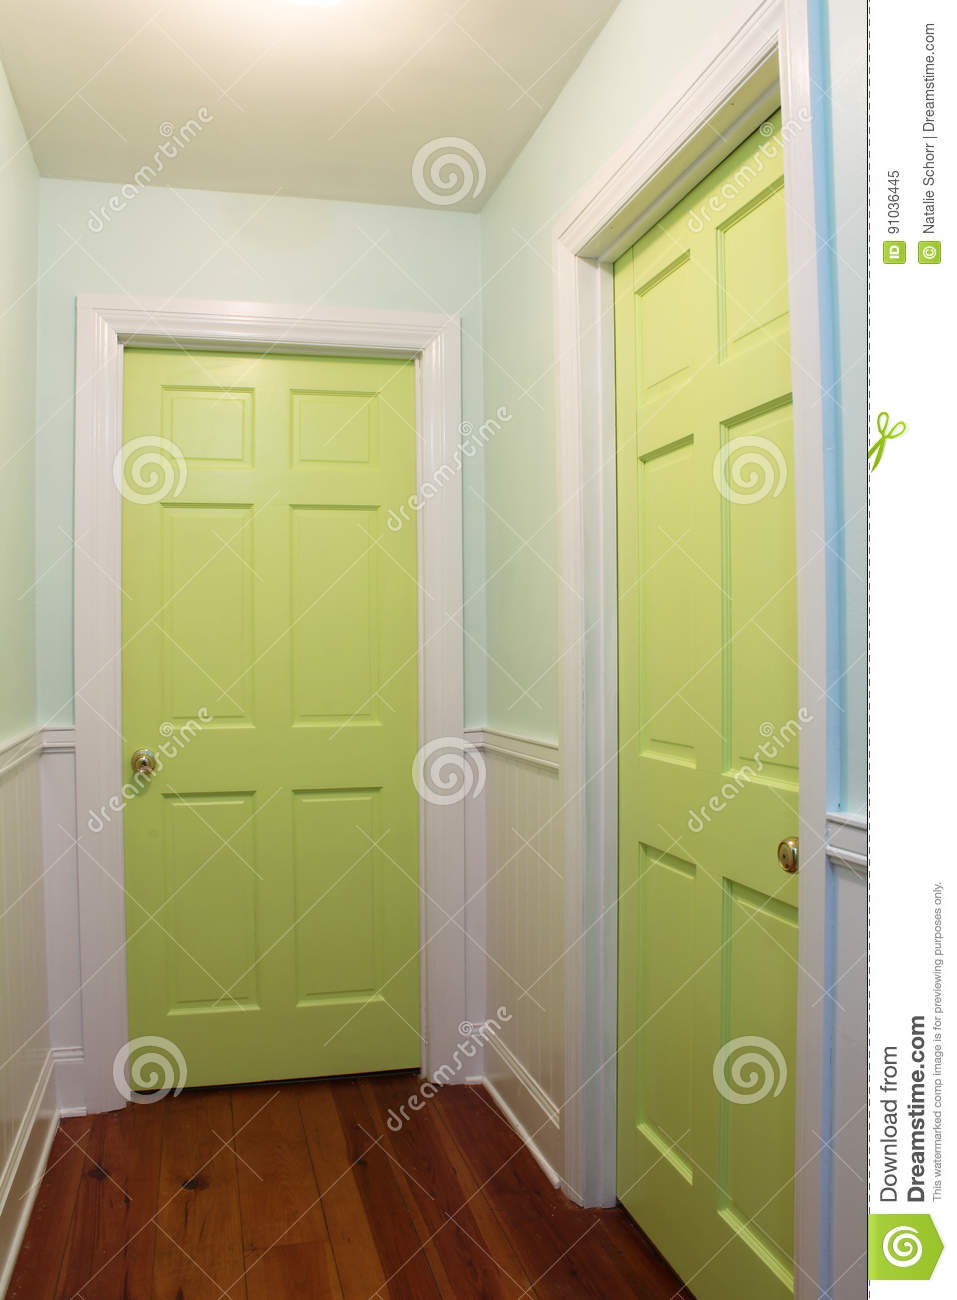 Interior Hallway With Two Green Doors Stock Image - Image of wall ...